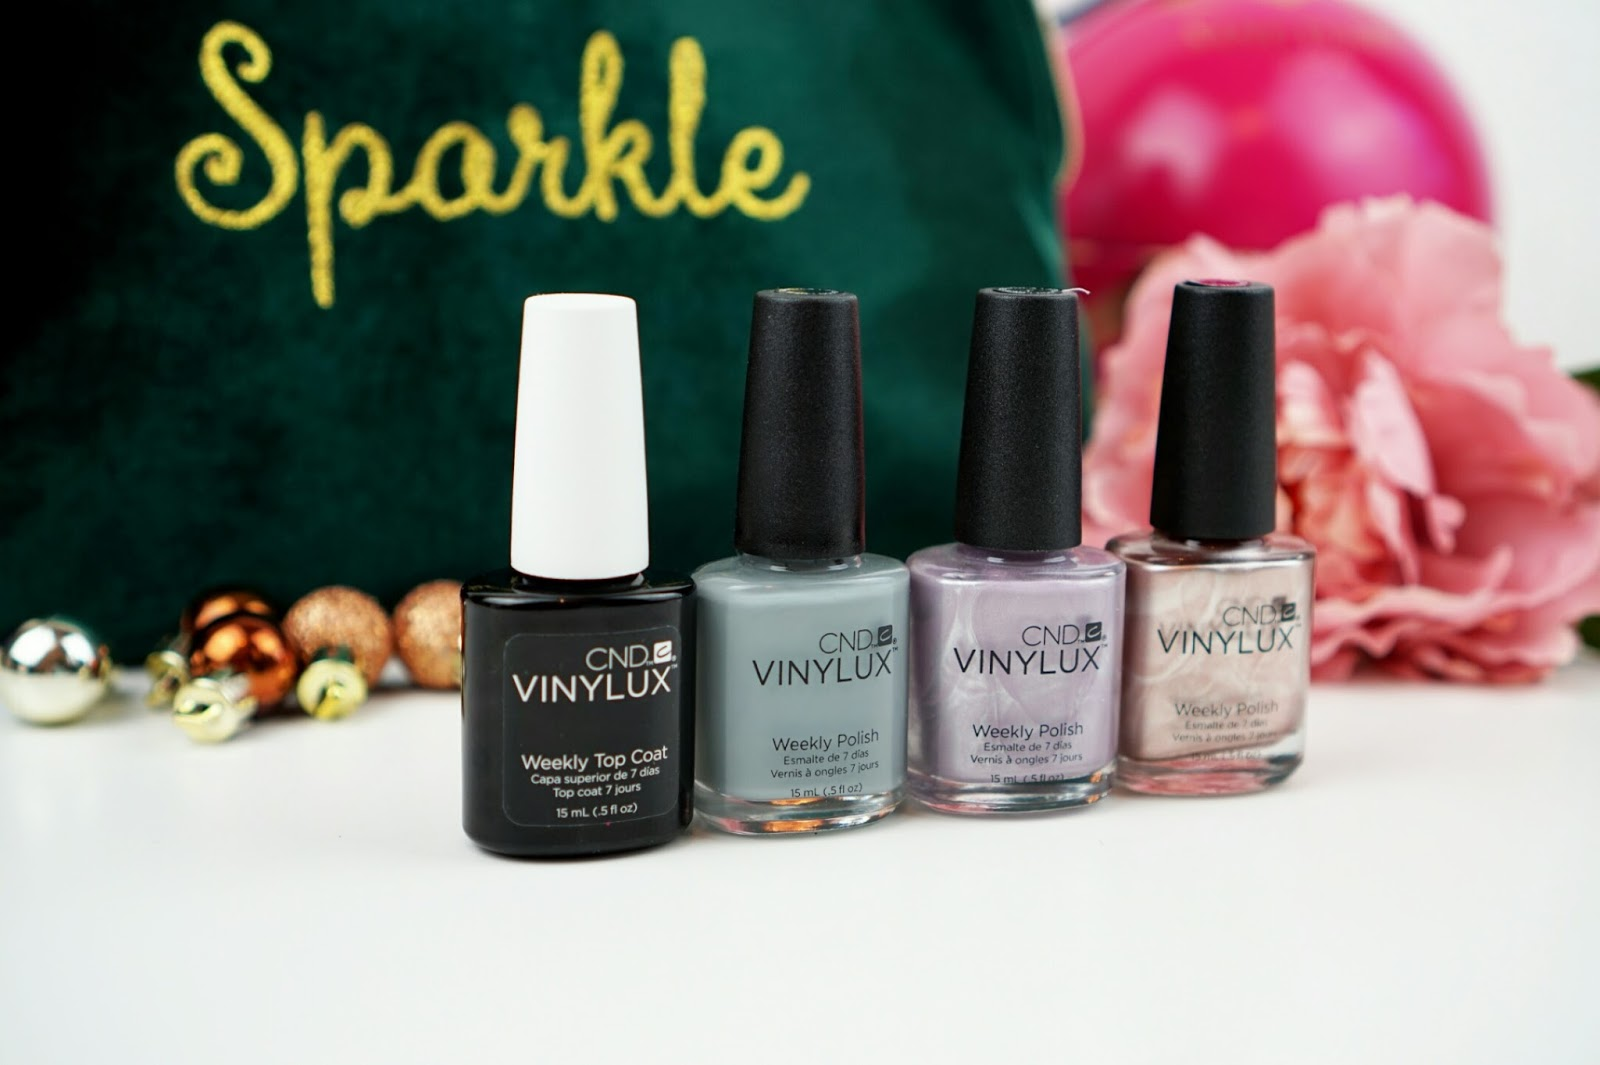 CND_Vinylux_Weekly_Polish_Colours_and_Topcoat_Set